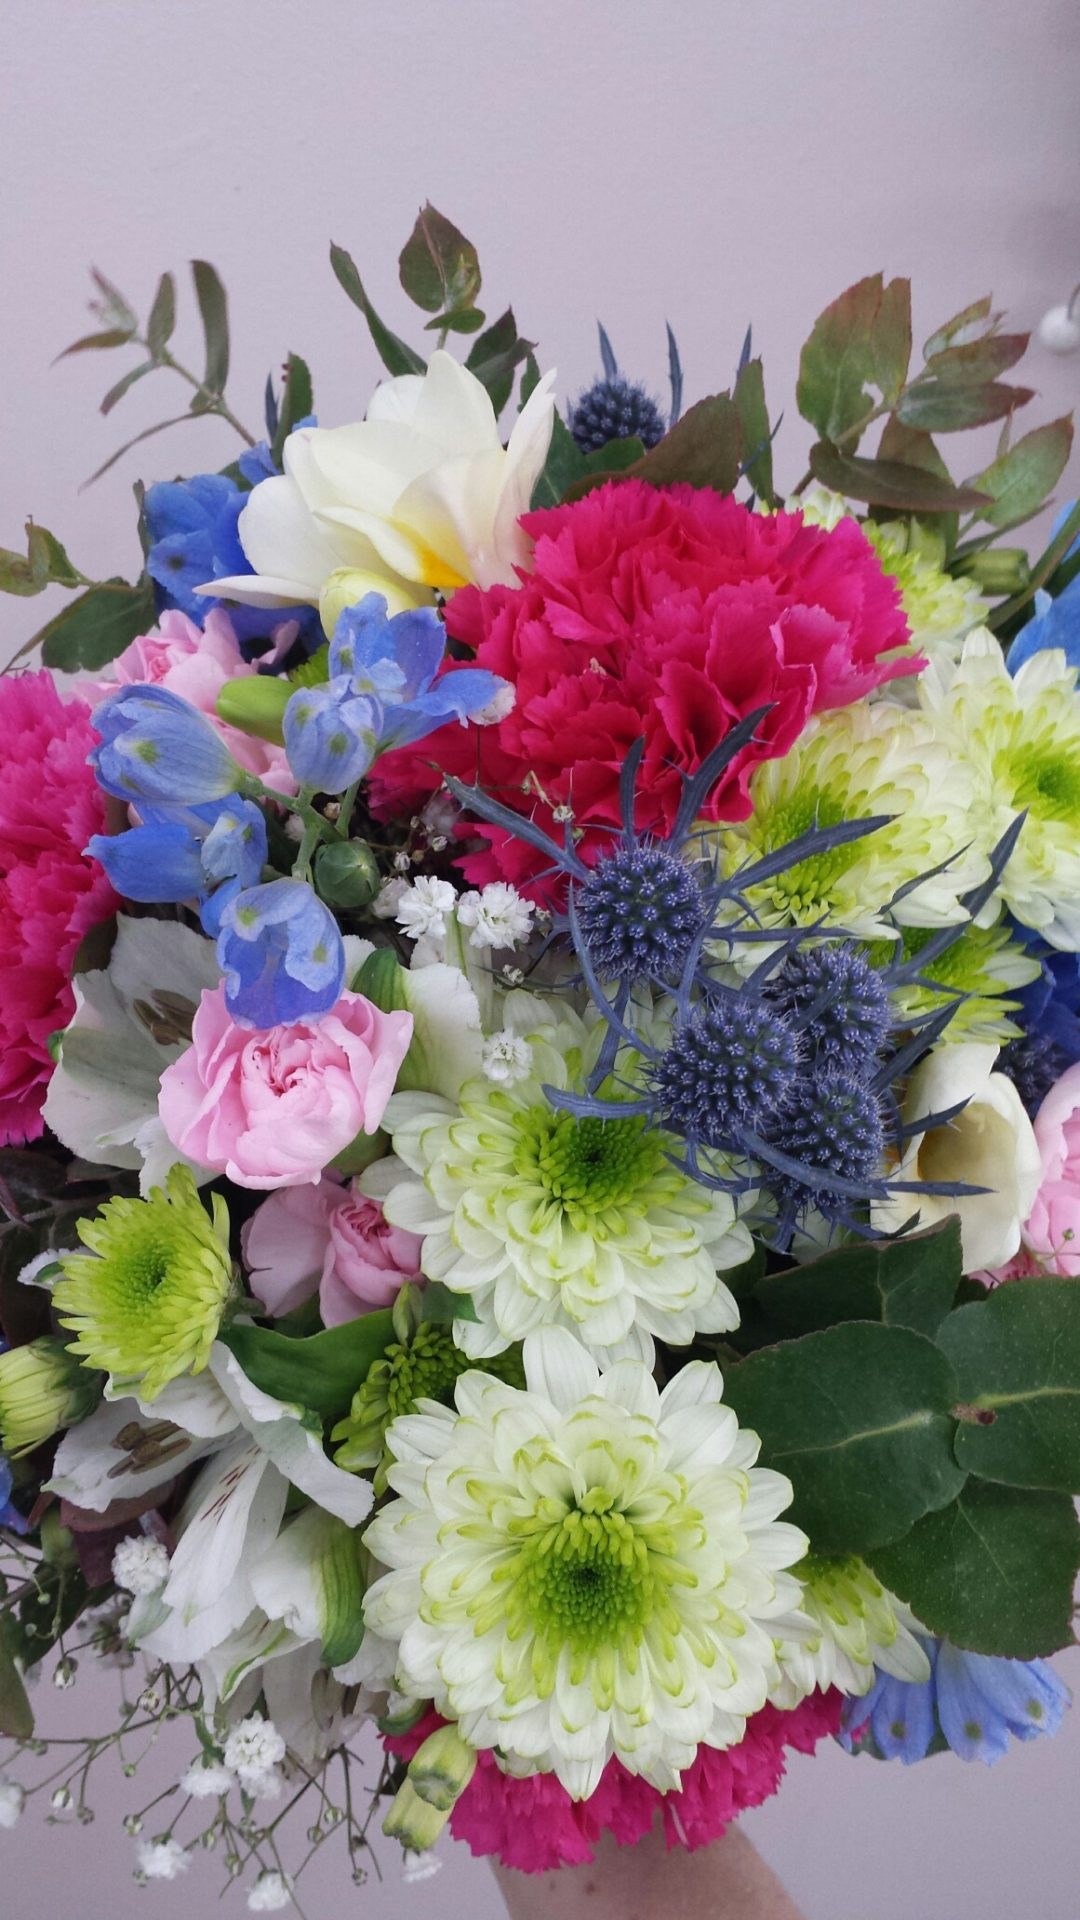 garden style daisy, seaholly, roses, gyp and delphinium